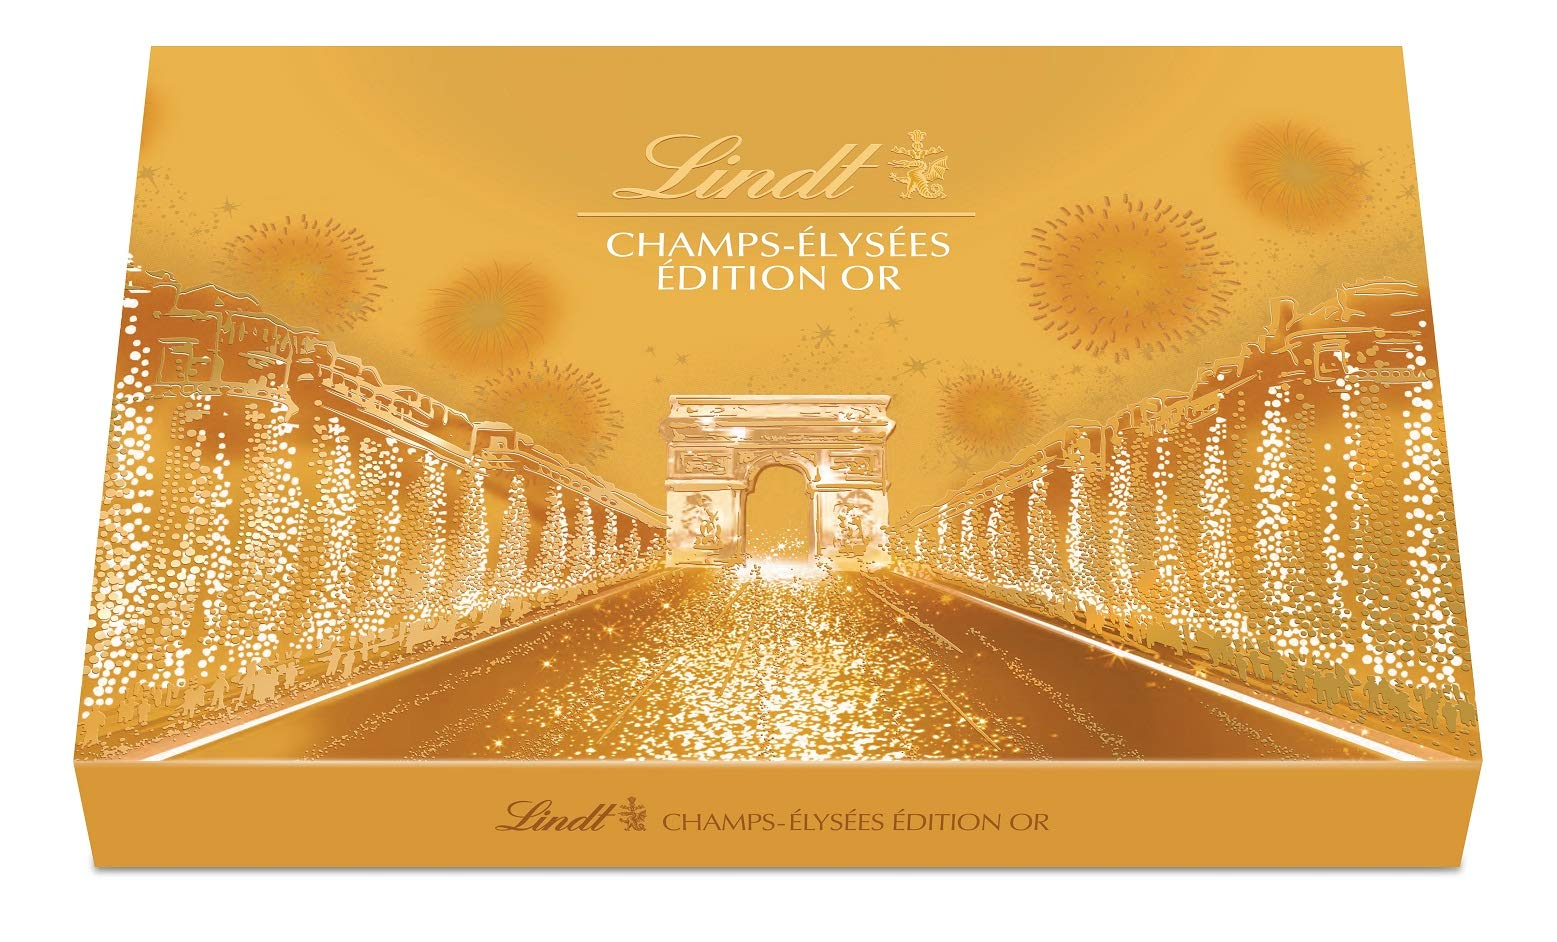 Lindt Champs Elysées Chocolate Box Gourmet Milk and Dark Chocolate Assortment 44 Chocolates 16.5oz Gold Box by Lindt